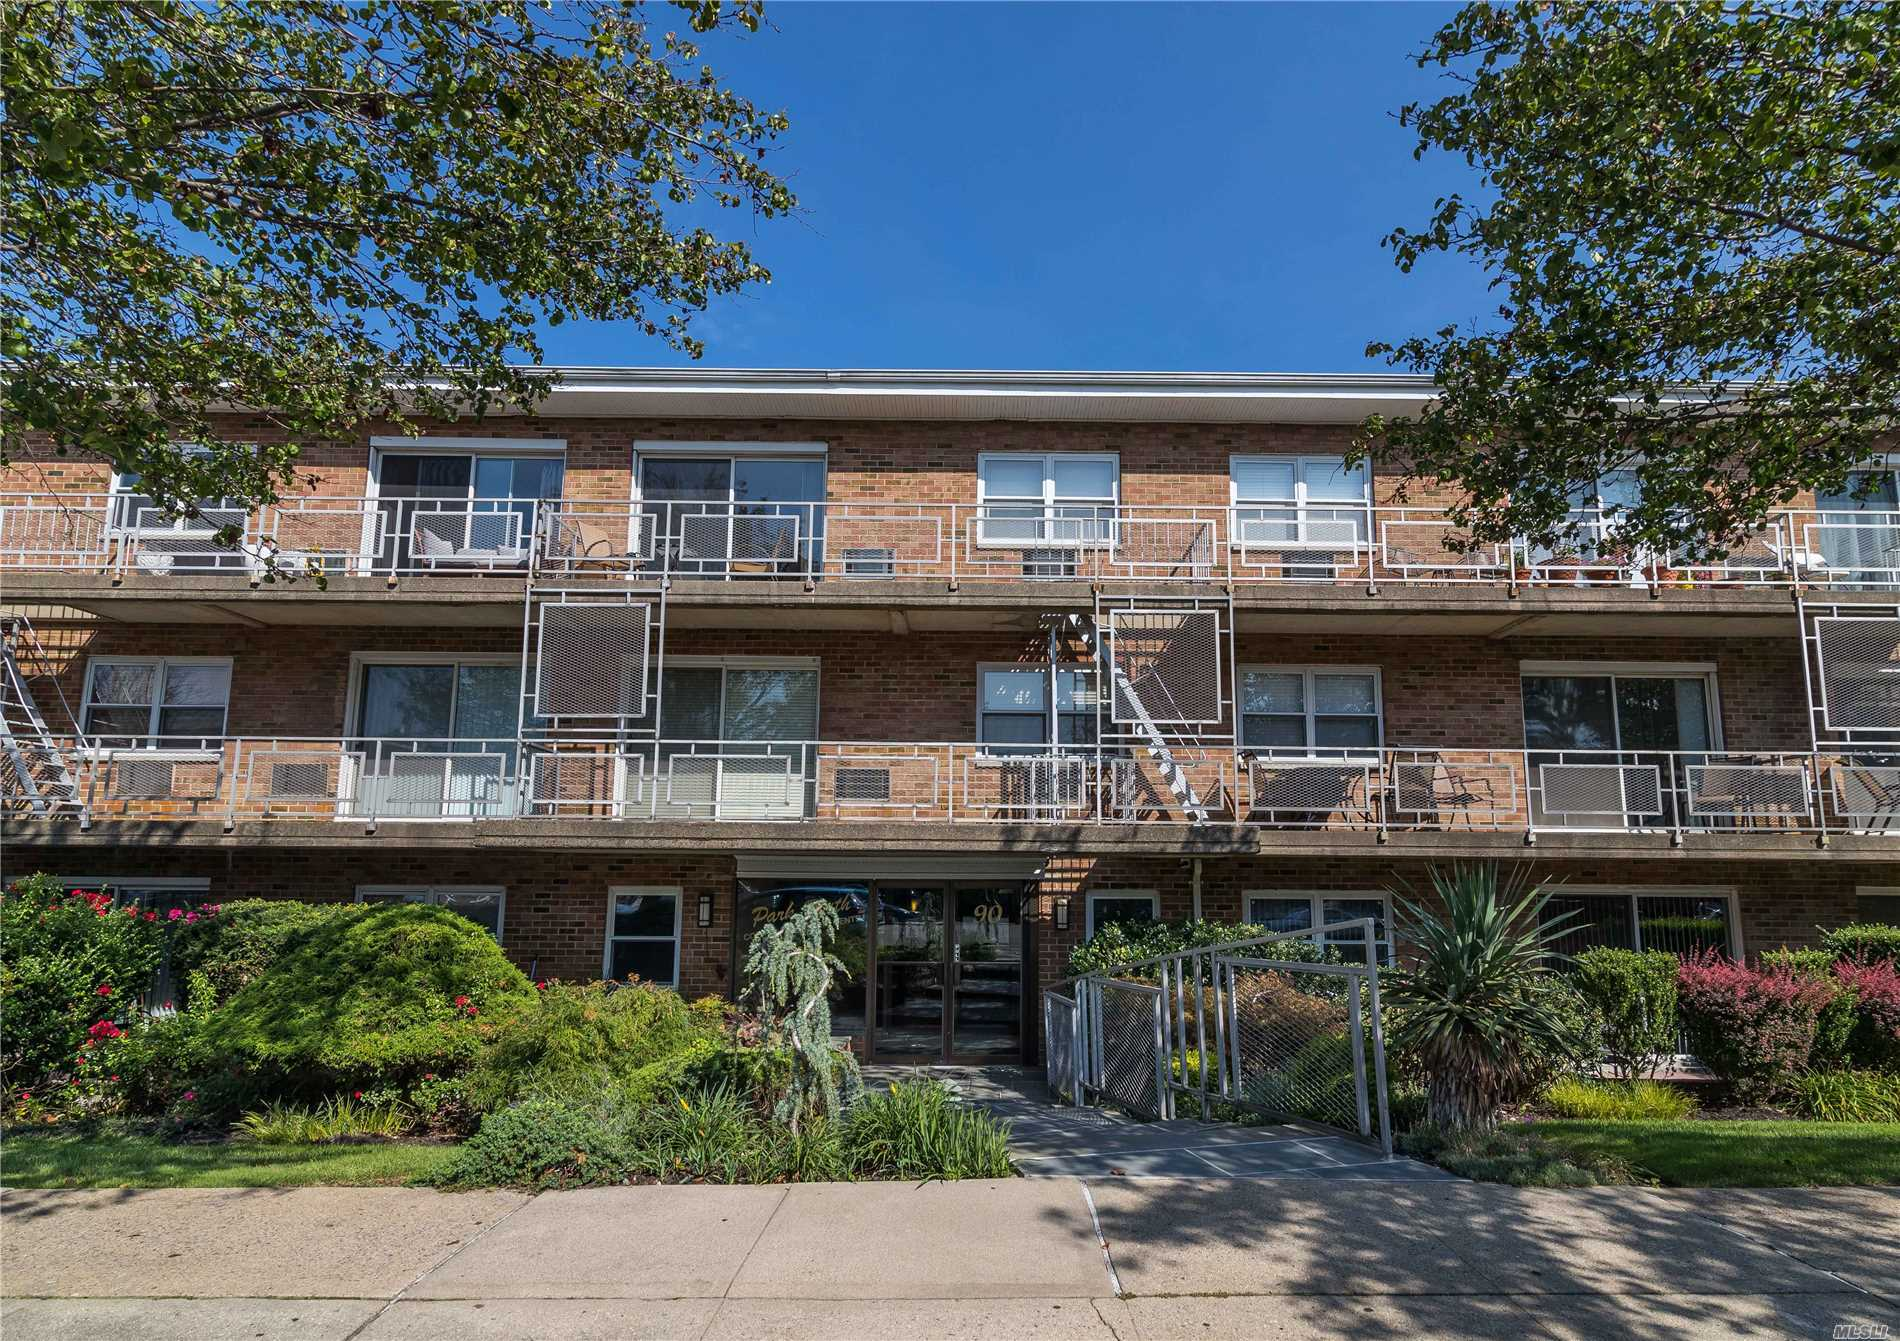 Large One Bedroom In Elevator Building With Terrace. Thermostat In Unit! Convenient To Shopping, Restaurants And Lirr. Washer And Dryer On Same Floor As Unit. Storage Unit Included. One Parking Spot.